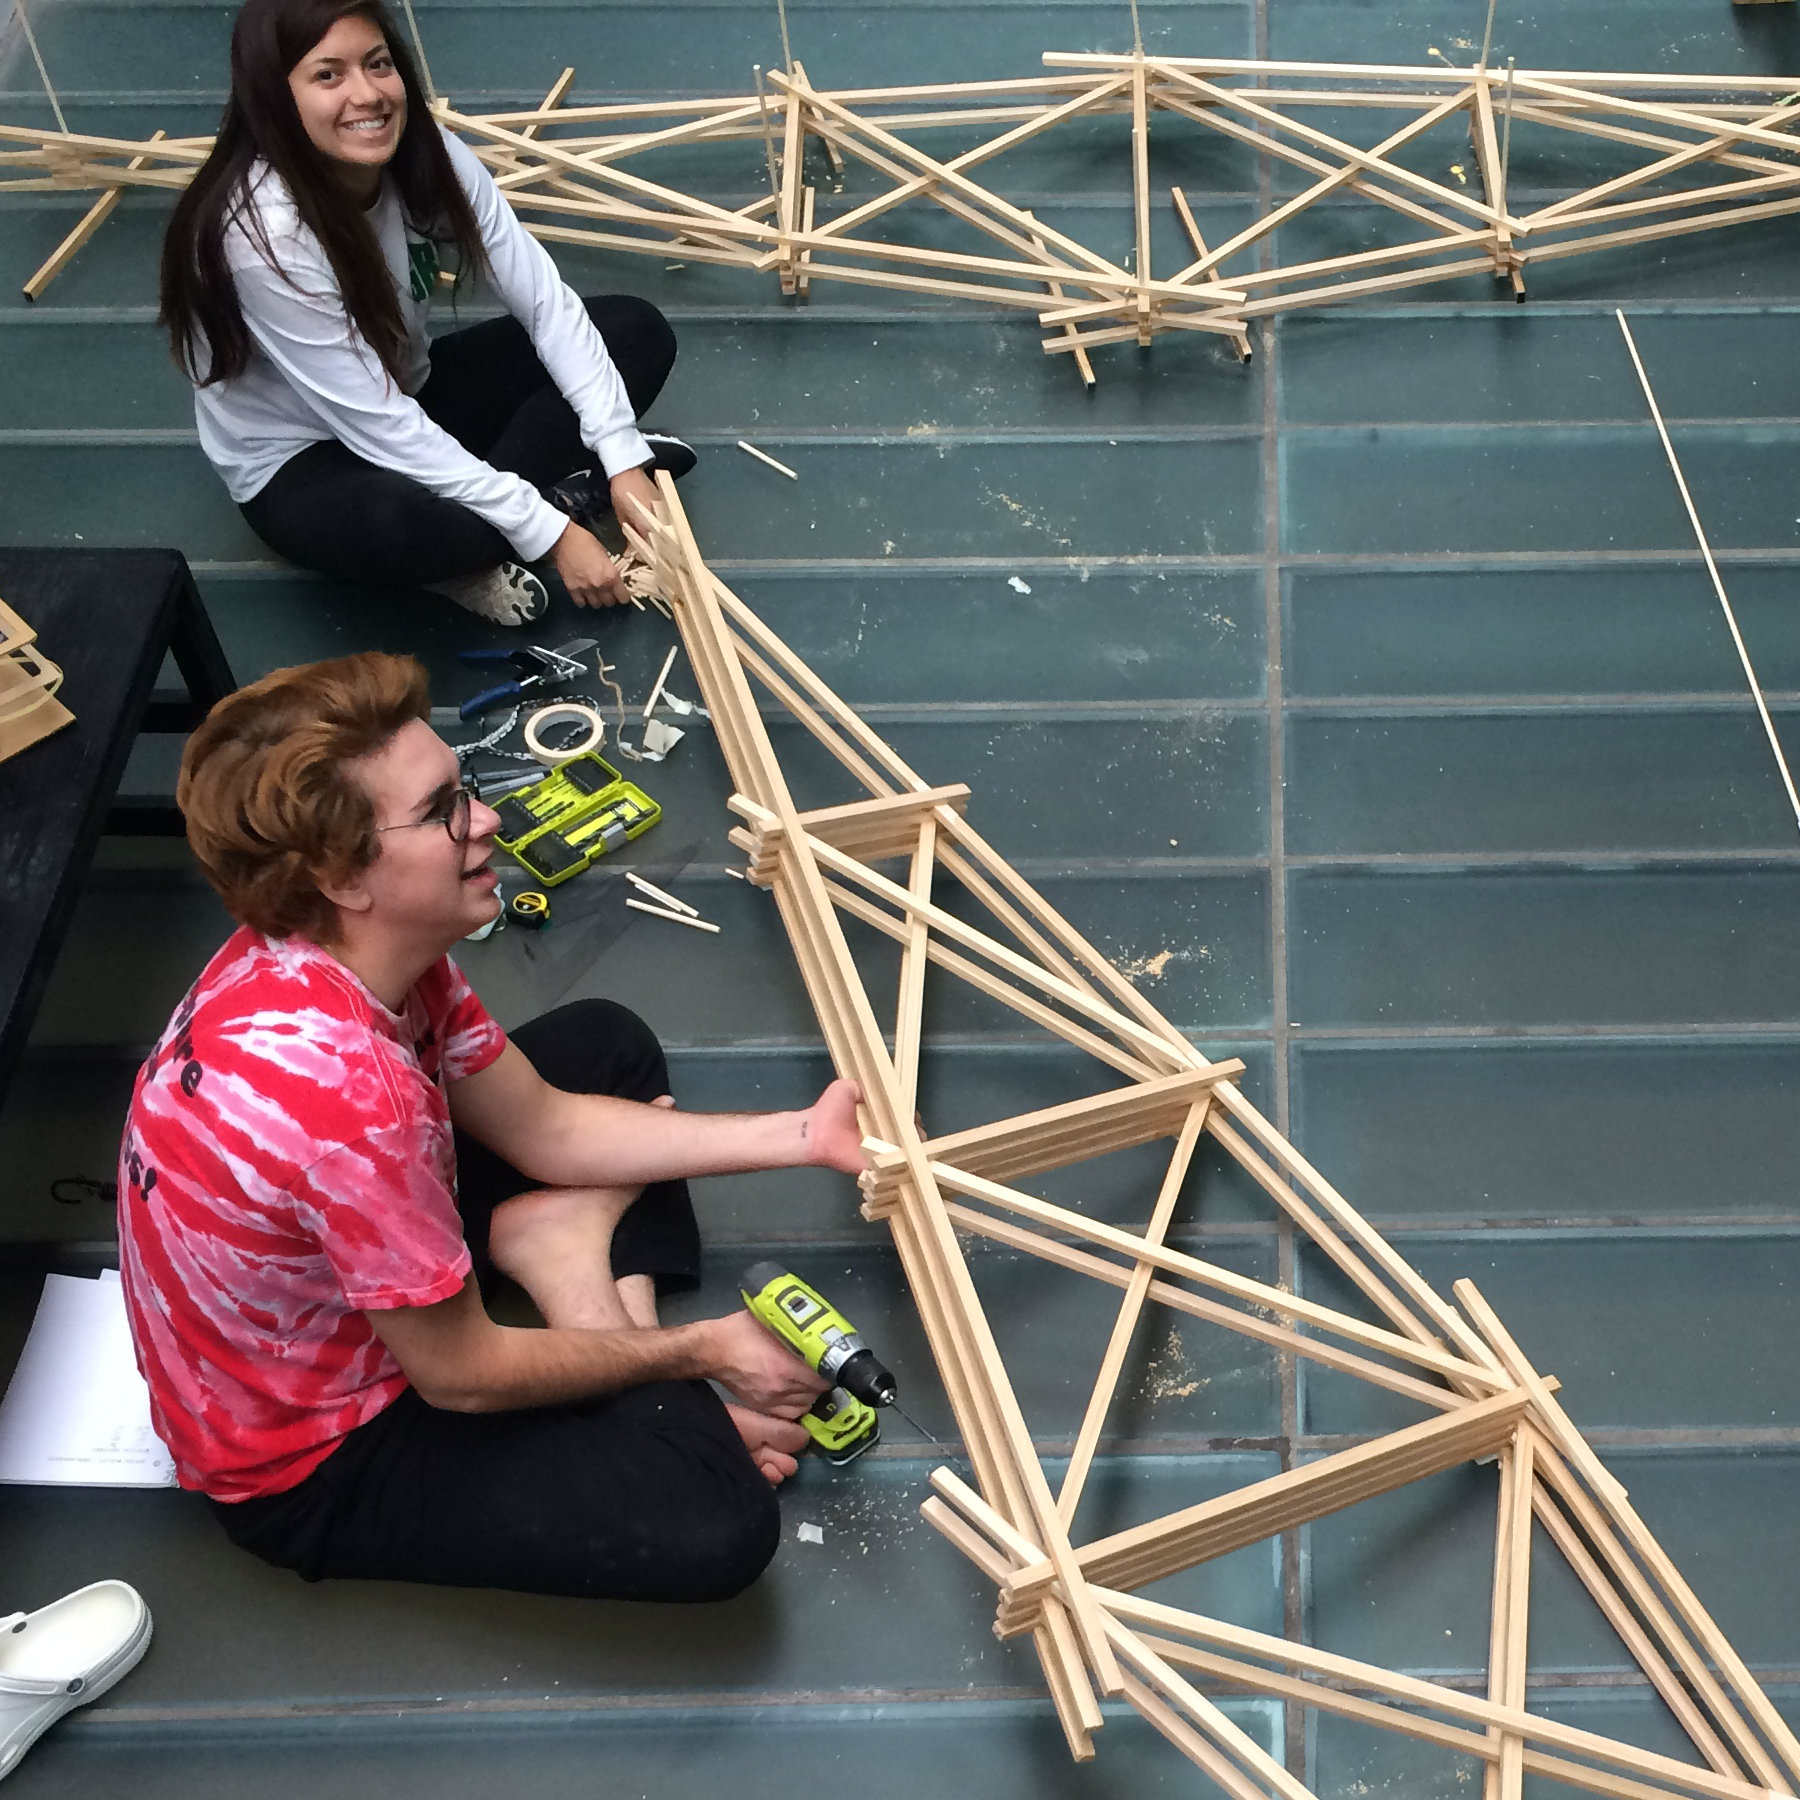 students sitting on floor of atrium with large bridge models